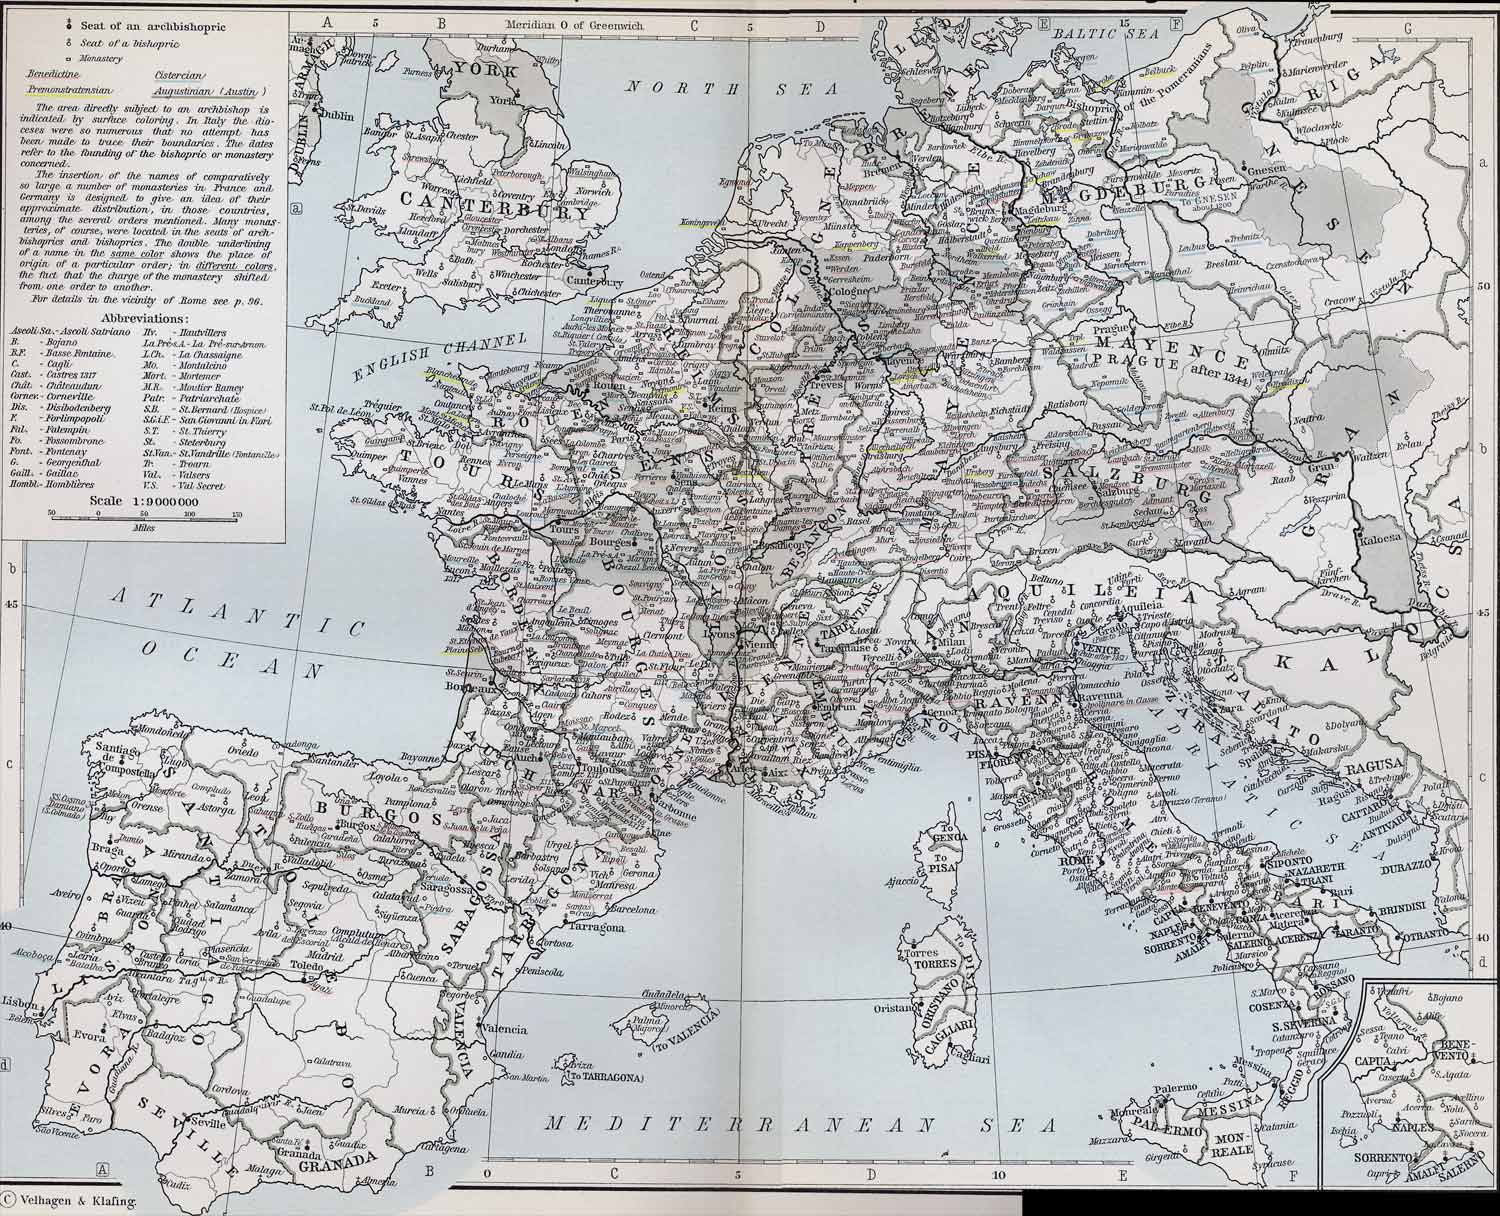 Ecclesiastical Map of Western Europe in the Middle Ages